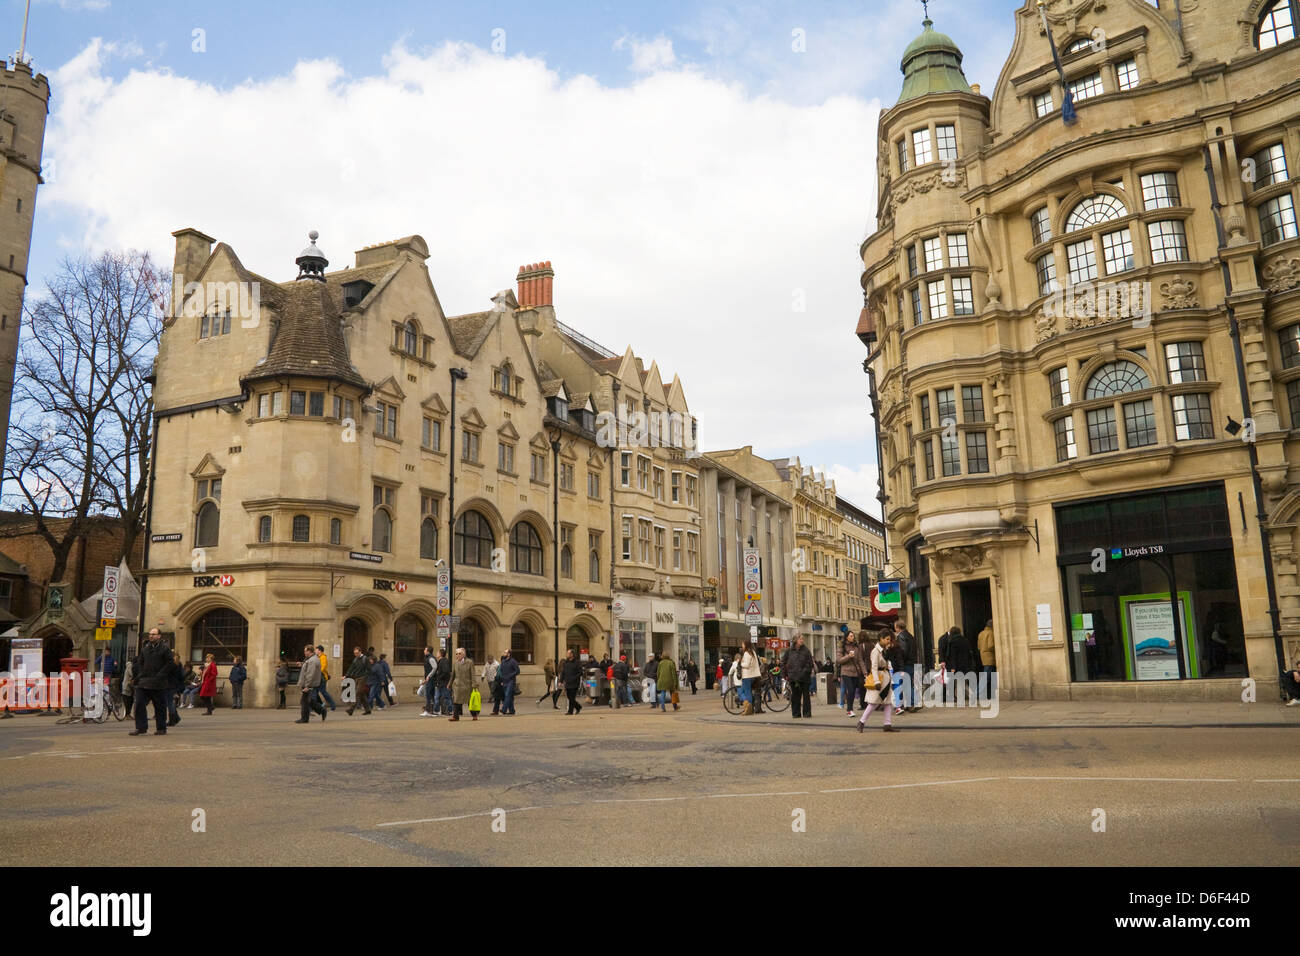 Oxford Oxfordshire HSBC and Lloyds Bank in historic buildings on